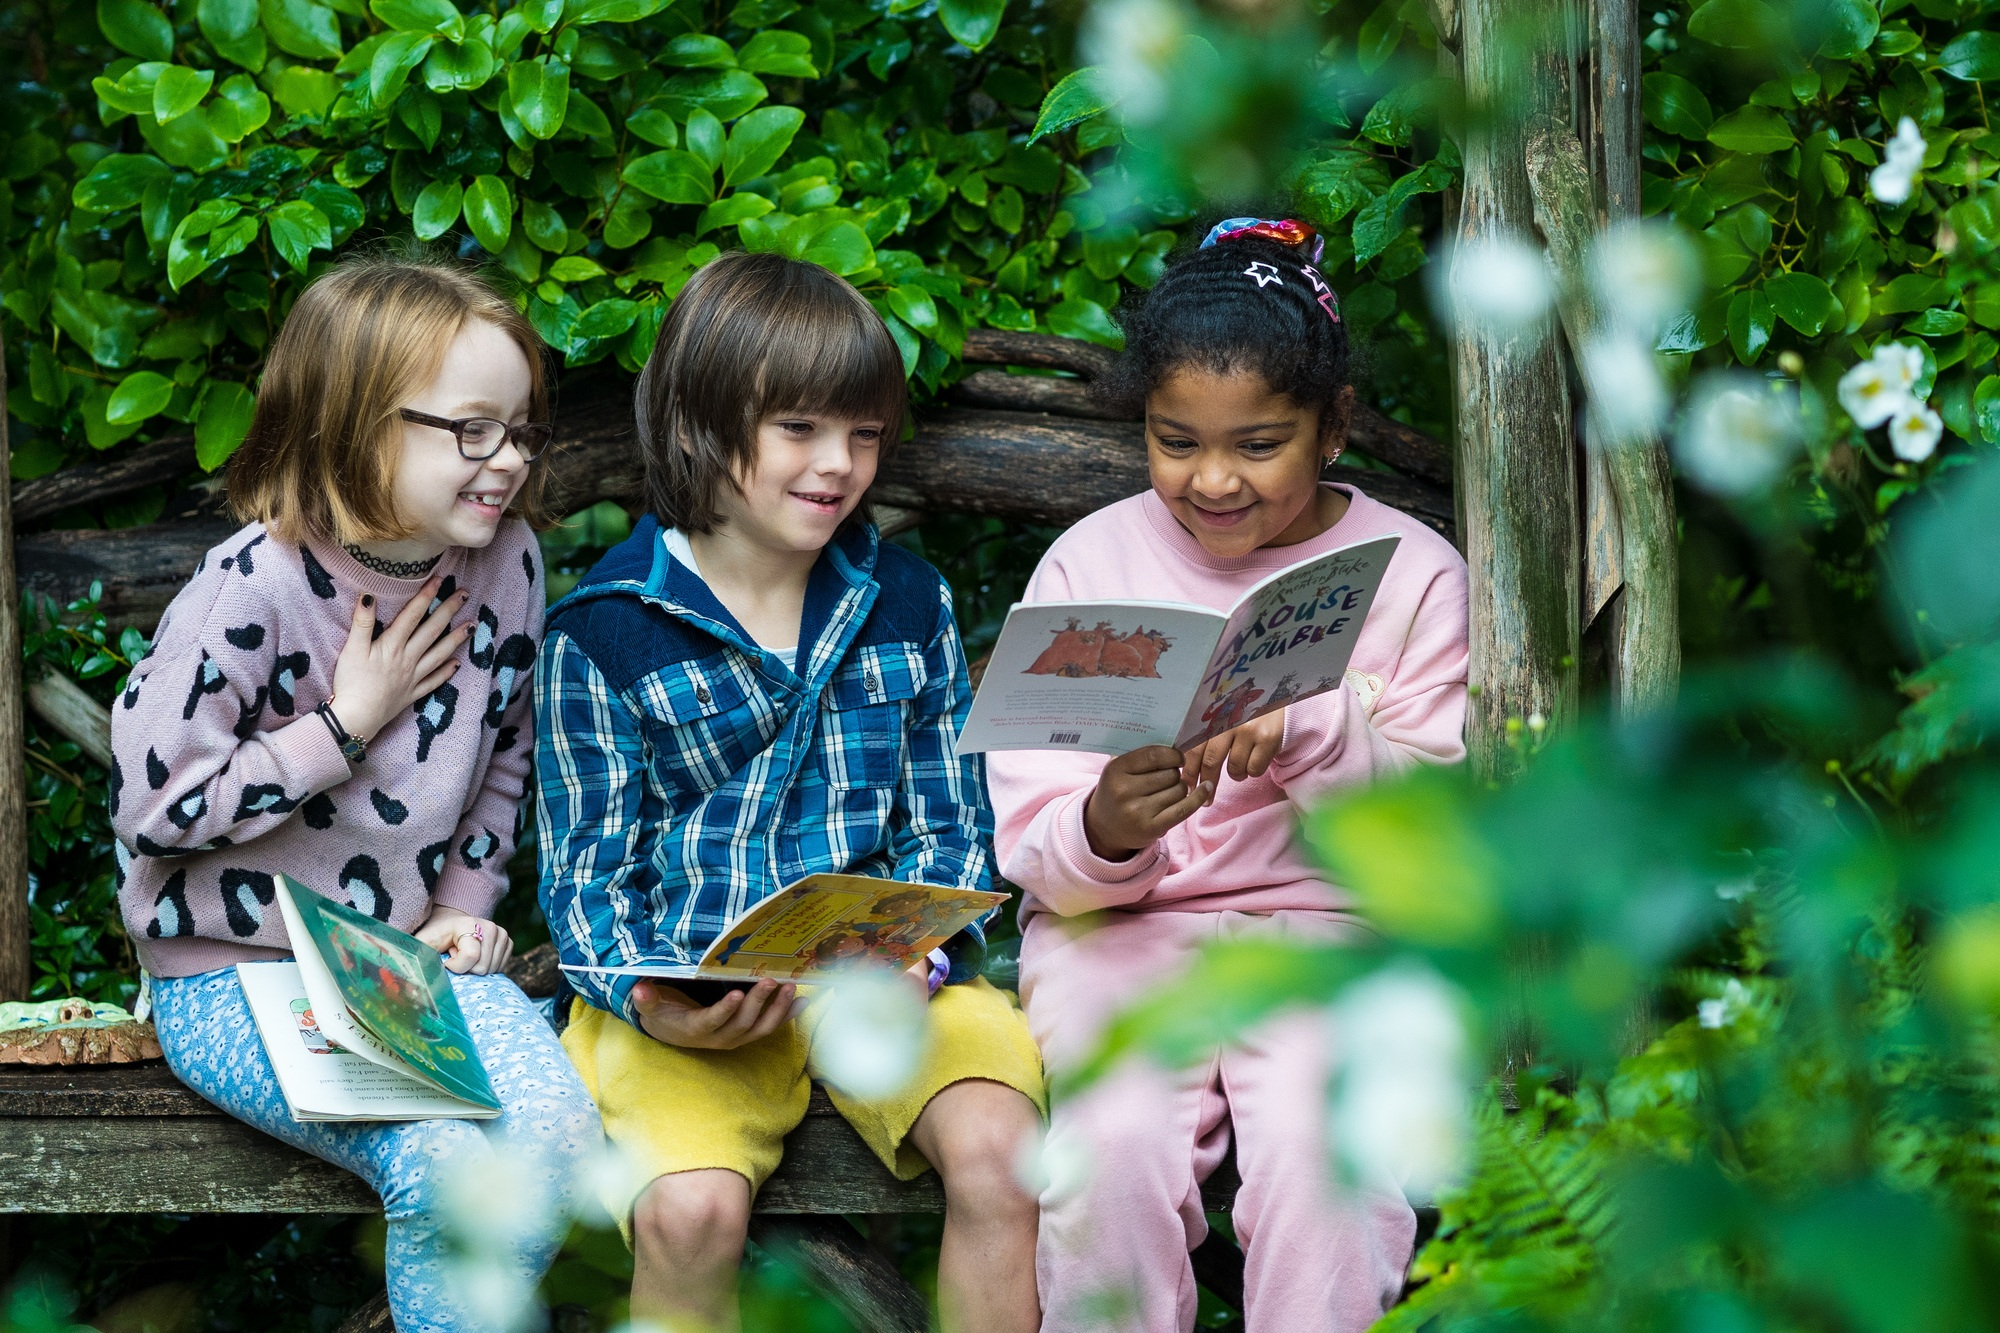 Year 3 students reading outdoors